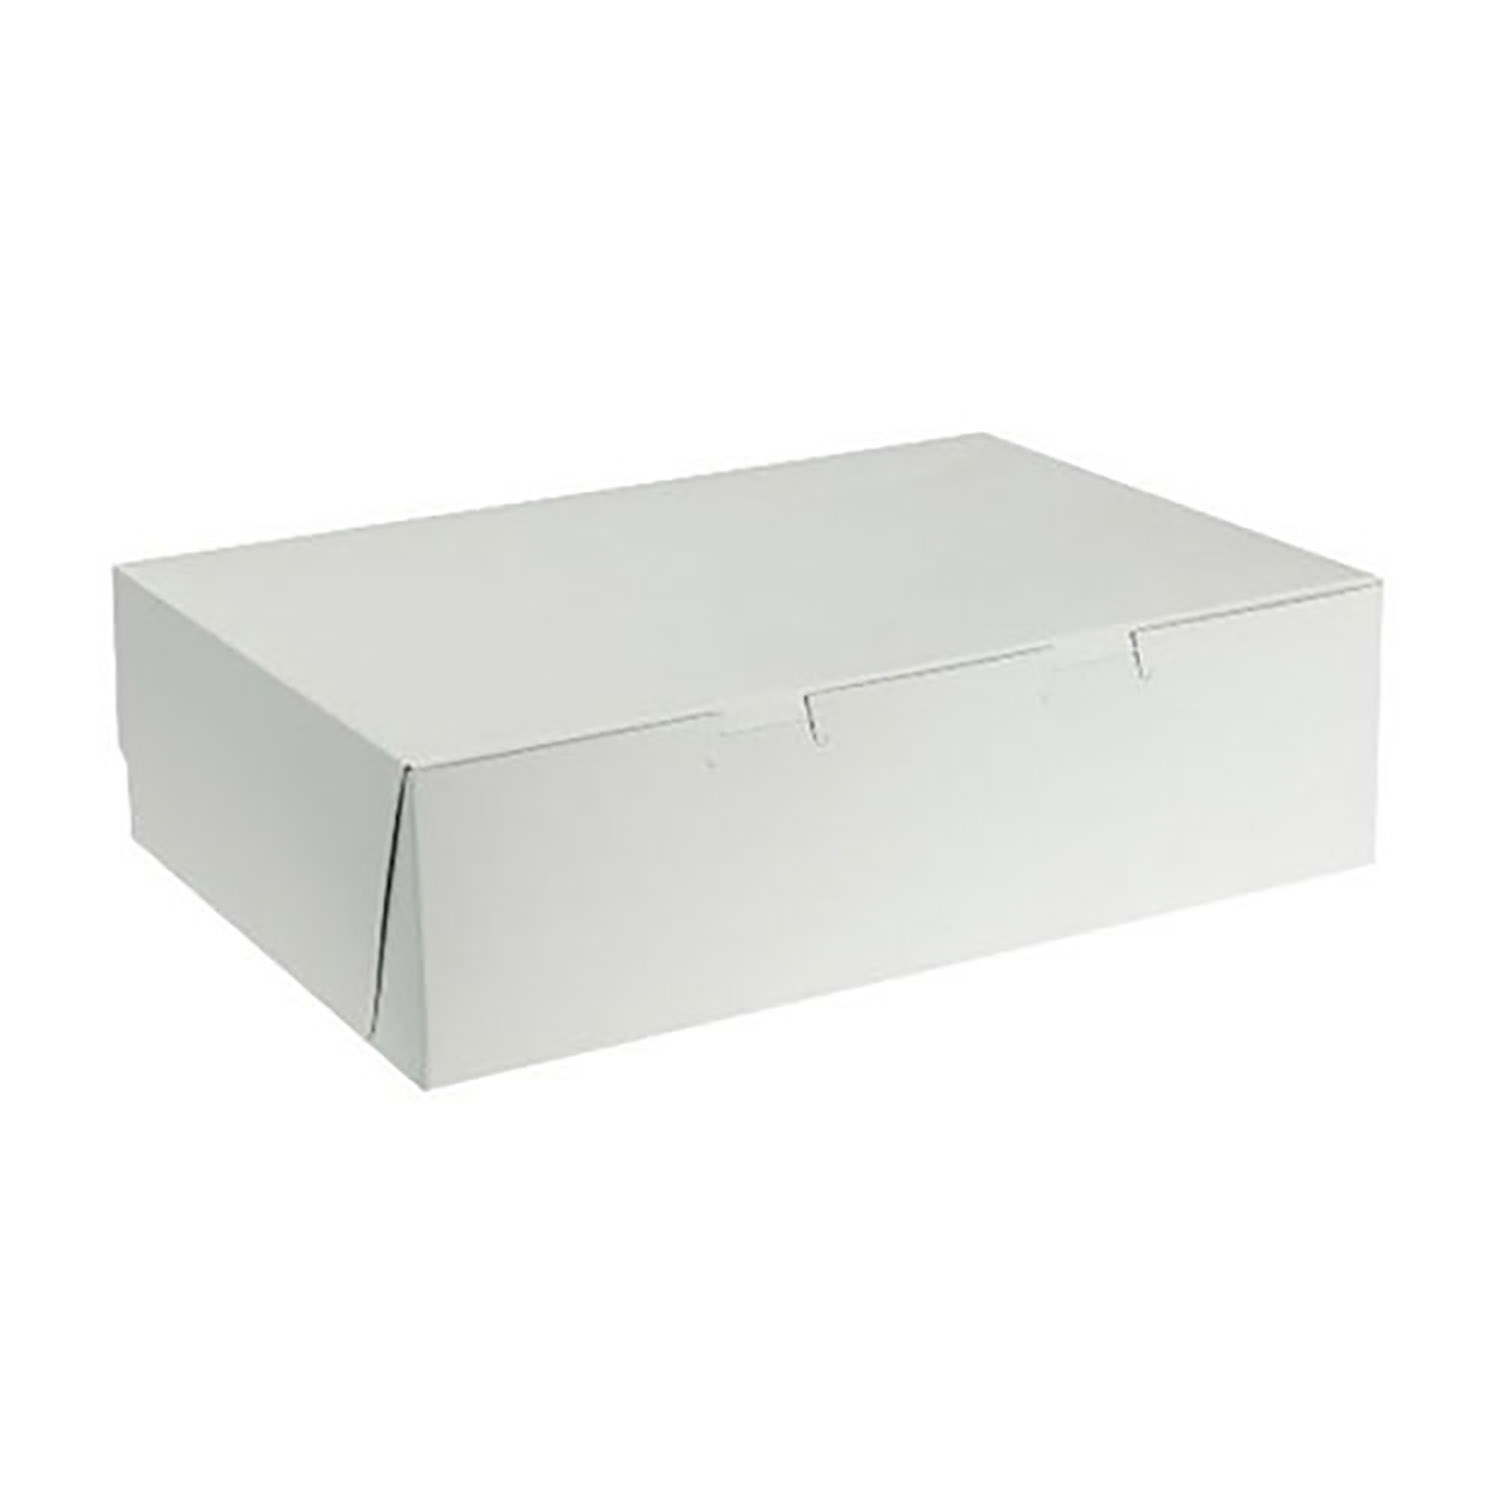 "14"" x 10"" x 4"" Quarter Sheet Cake Boxes"